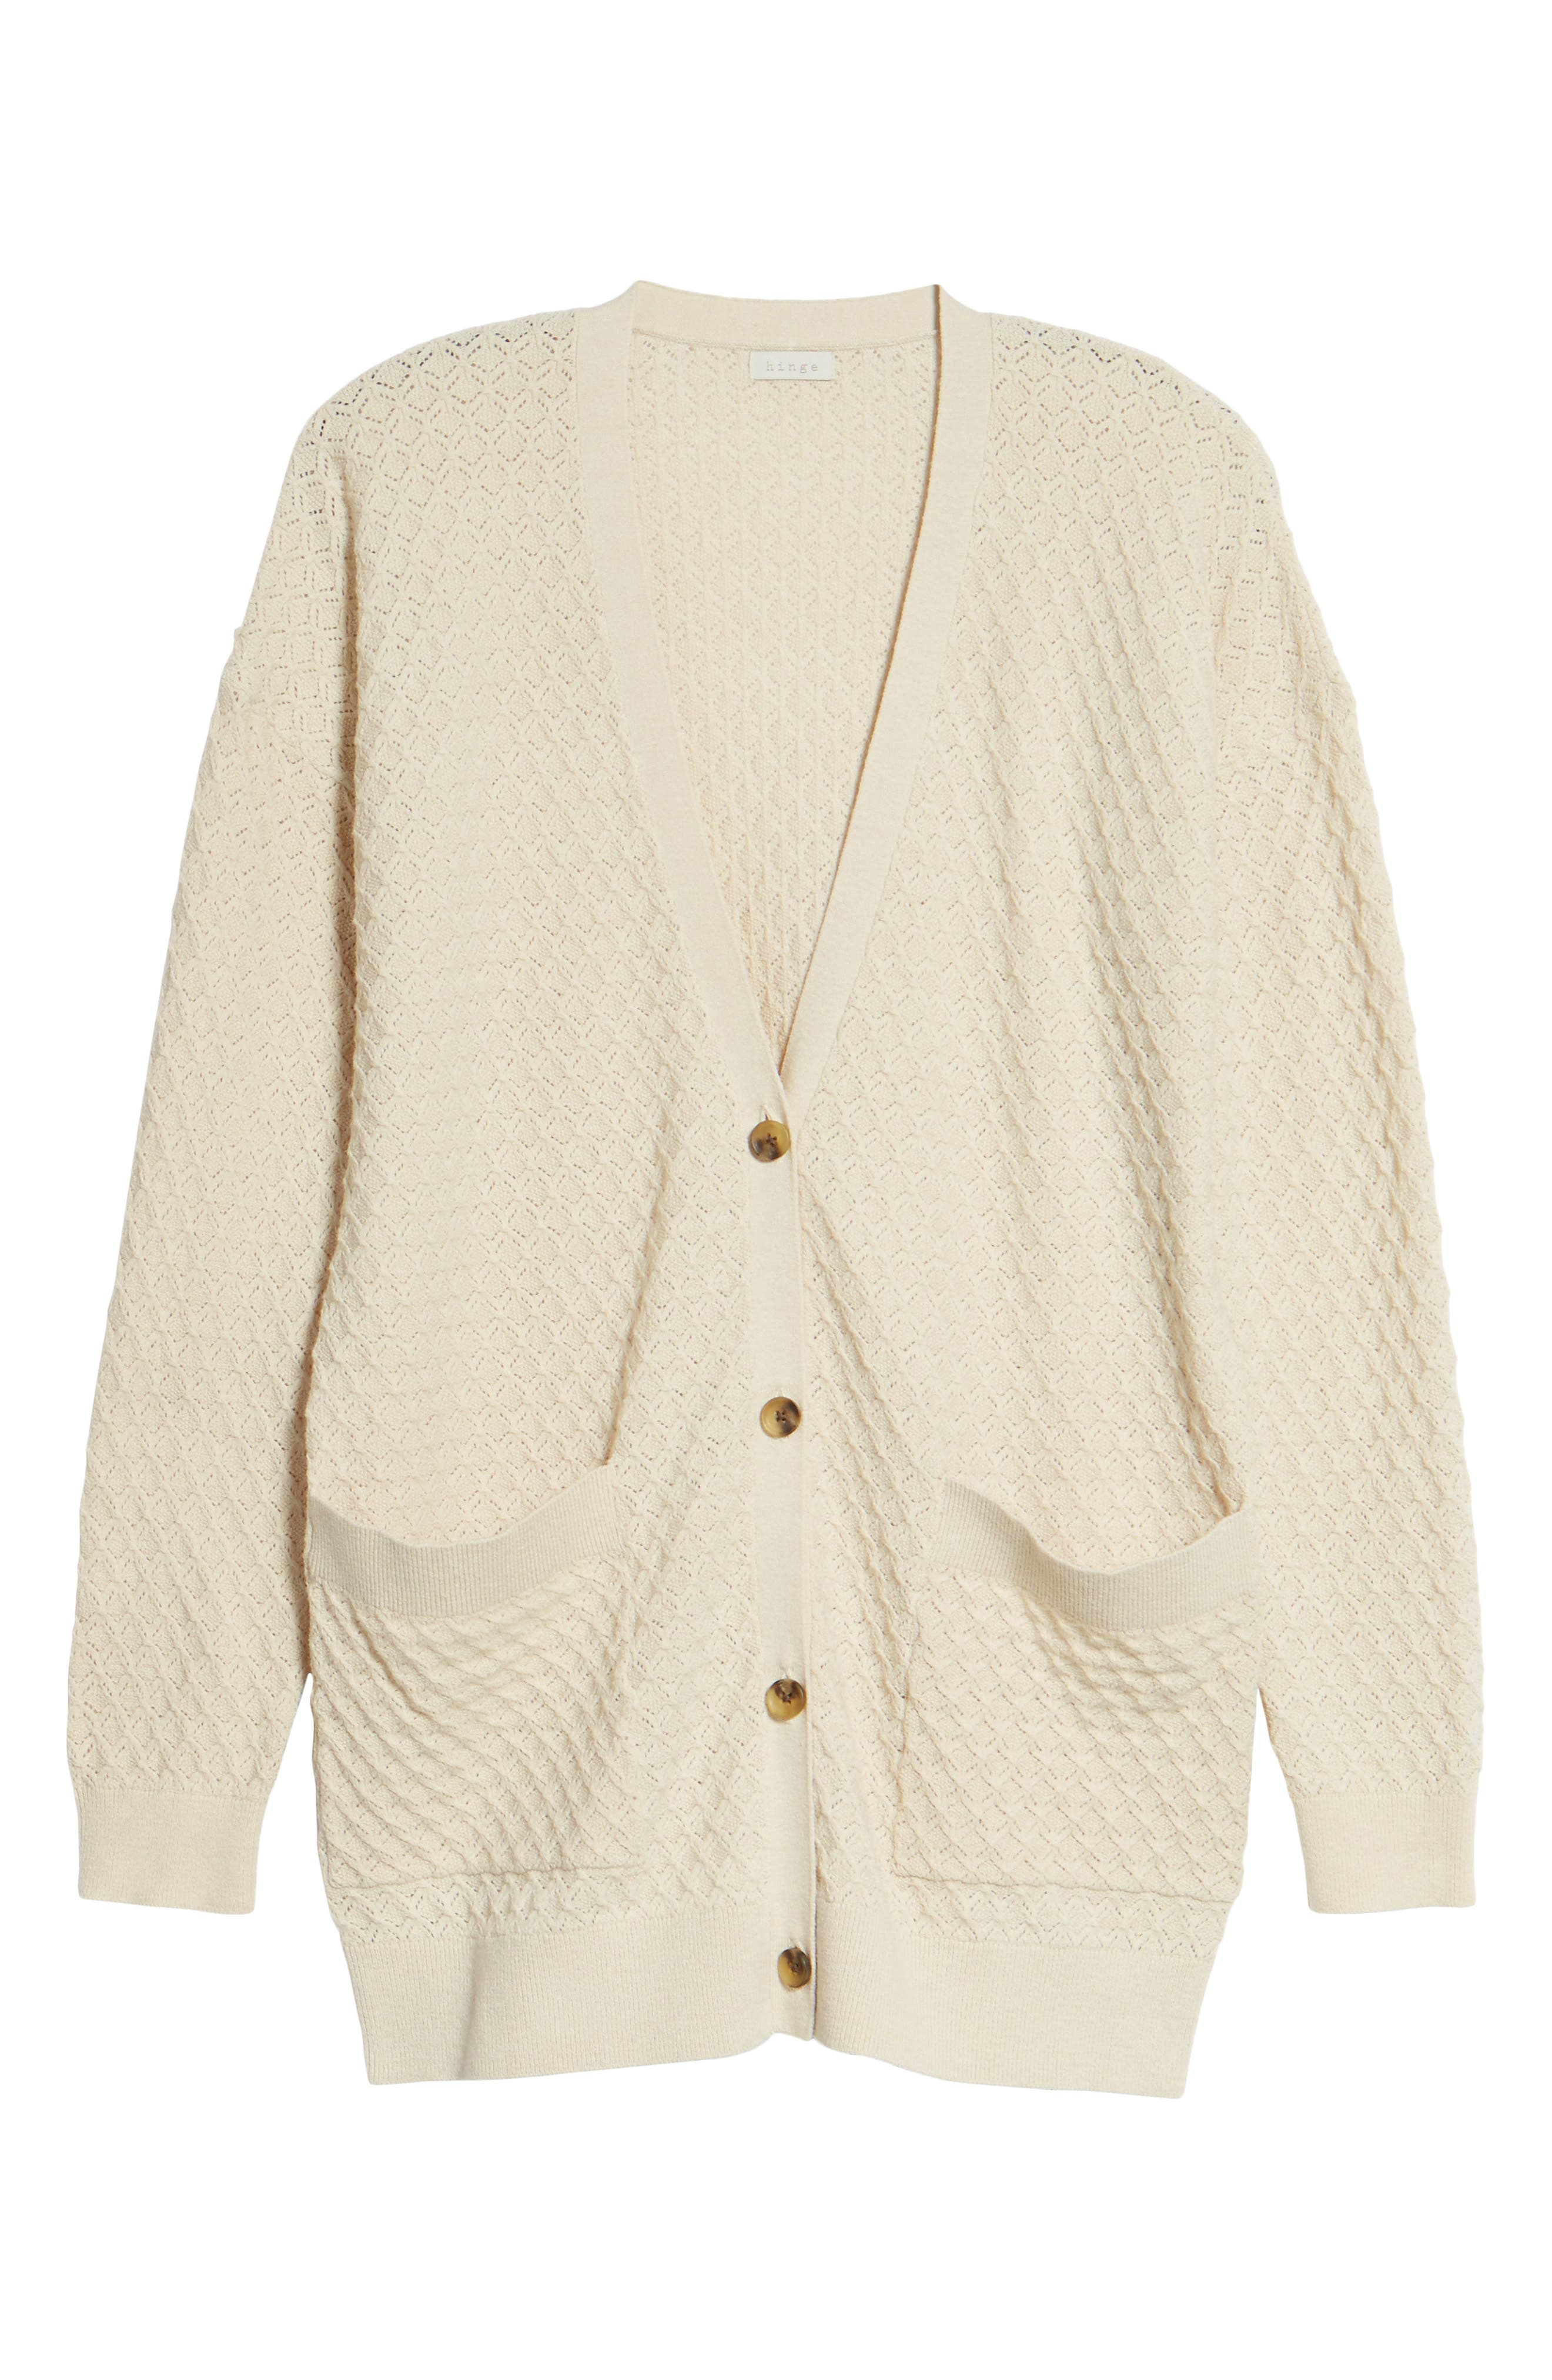 Pointelle Cardigan Sweater,                             Alternate thumbnail 22, color,